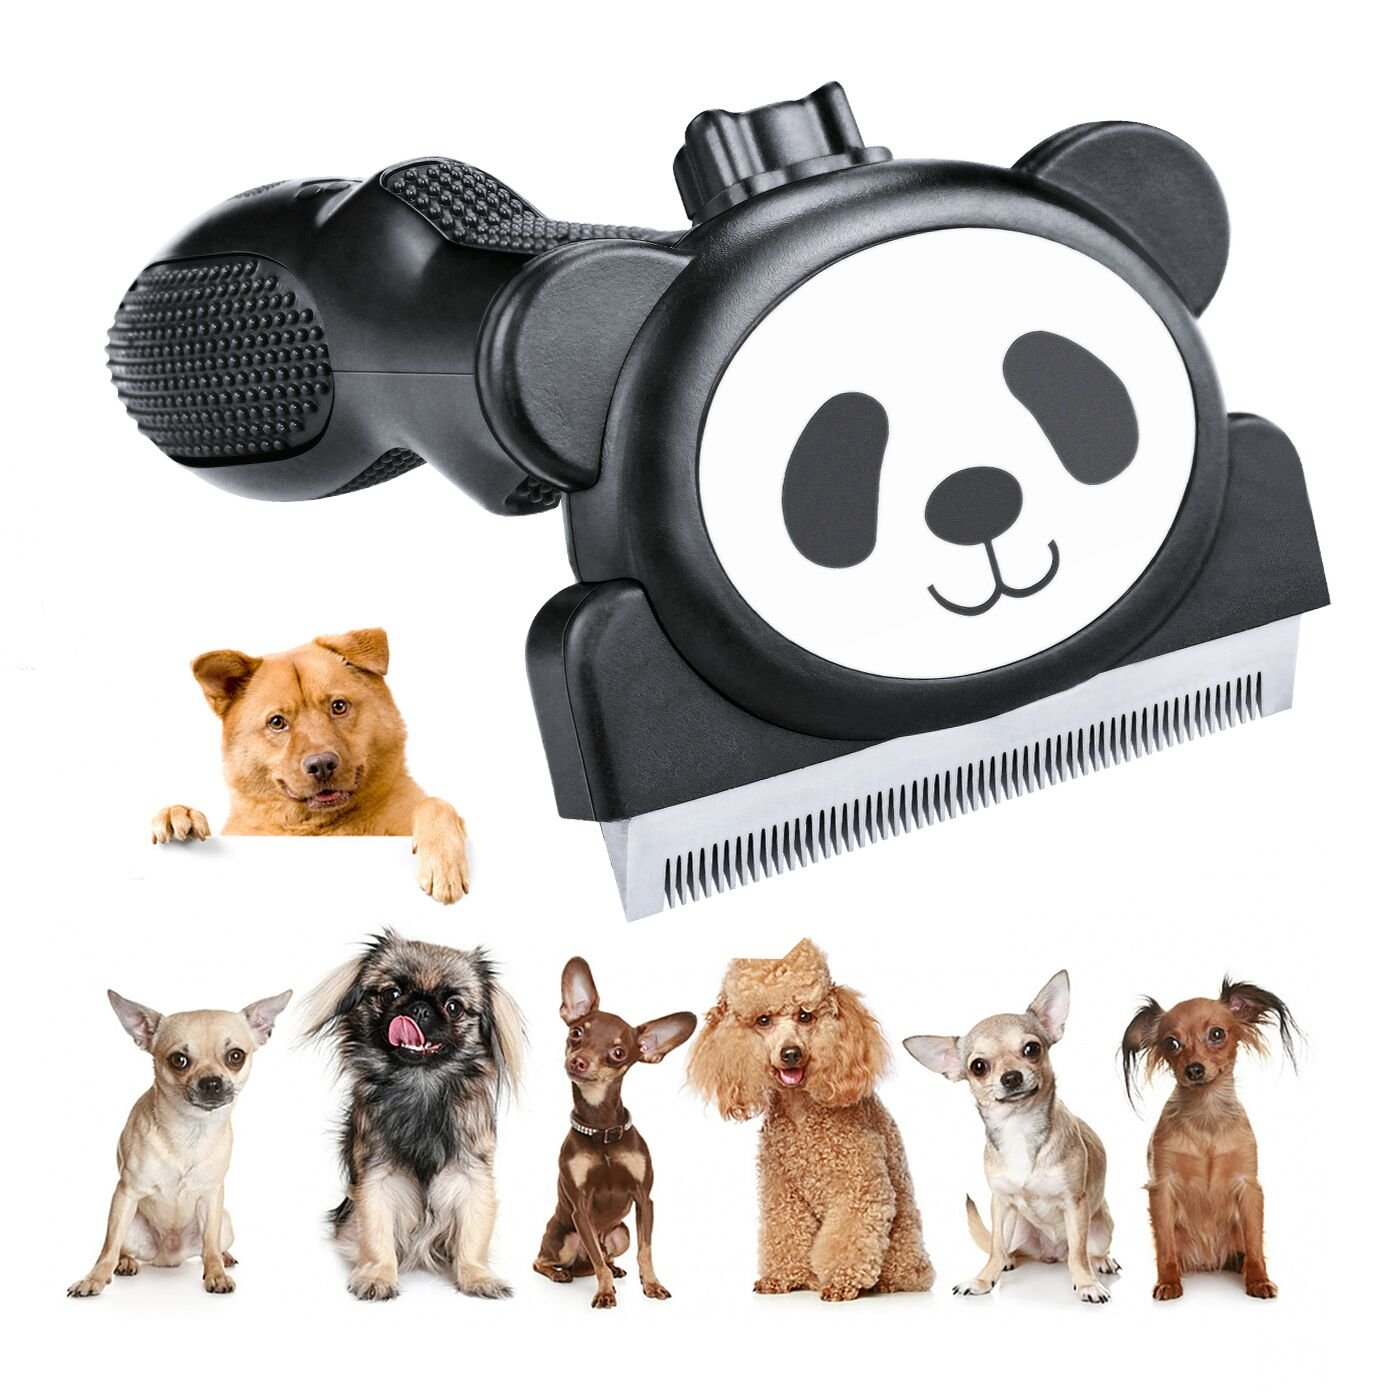 Cubbe Pet Brush Deshedding Tool, 2018 NEW Professional Pet Cat Dog Grooming Brush, Slicker Brush, Pet Hair Fur Removal for Dogs and Cats with Stainless Steel, Shedding Up to 95% Long Short Hair